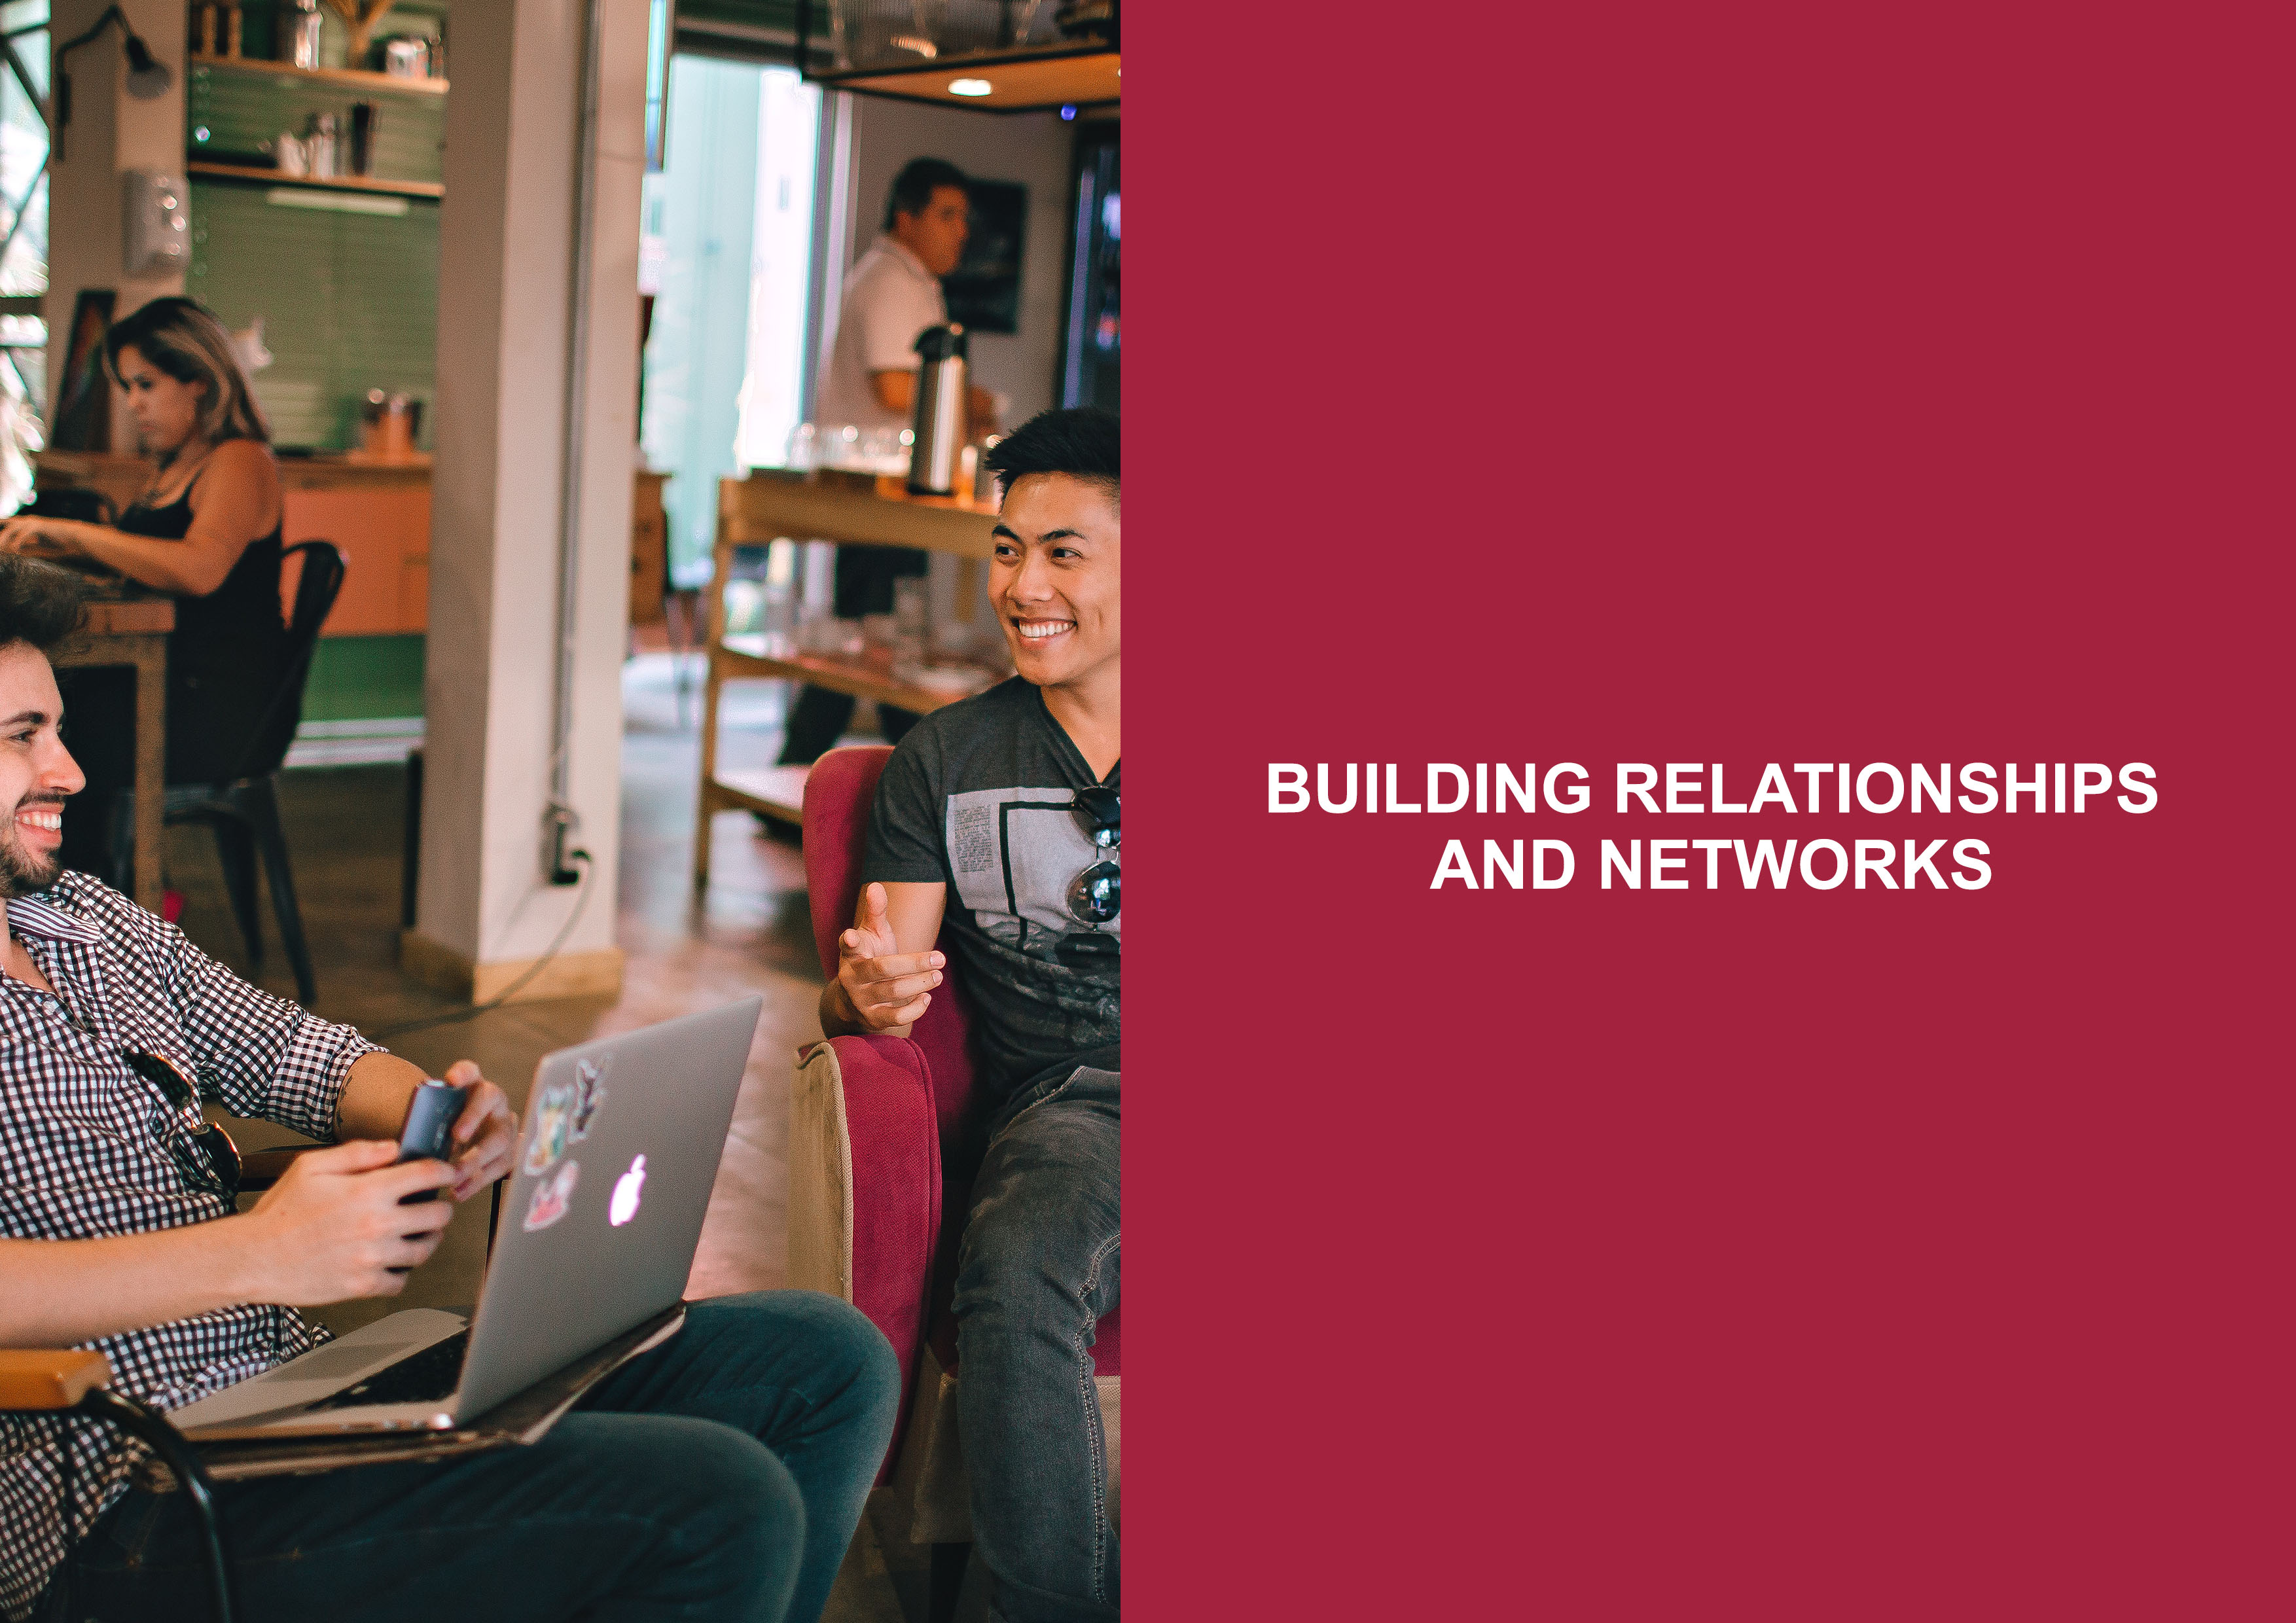 Building Relationships and Networking